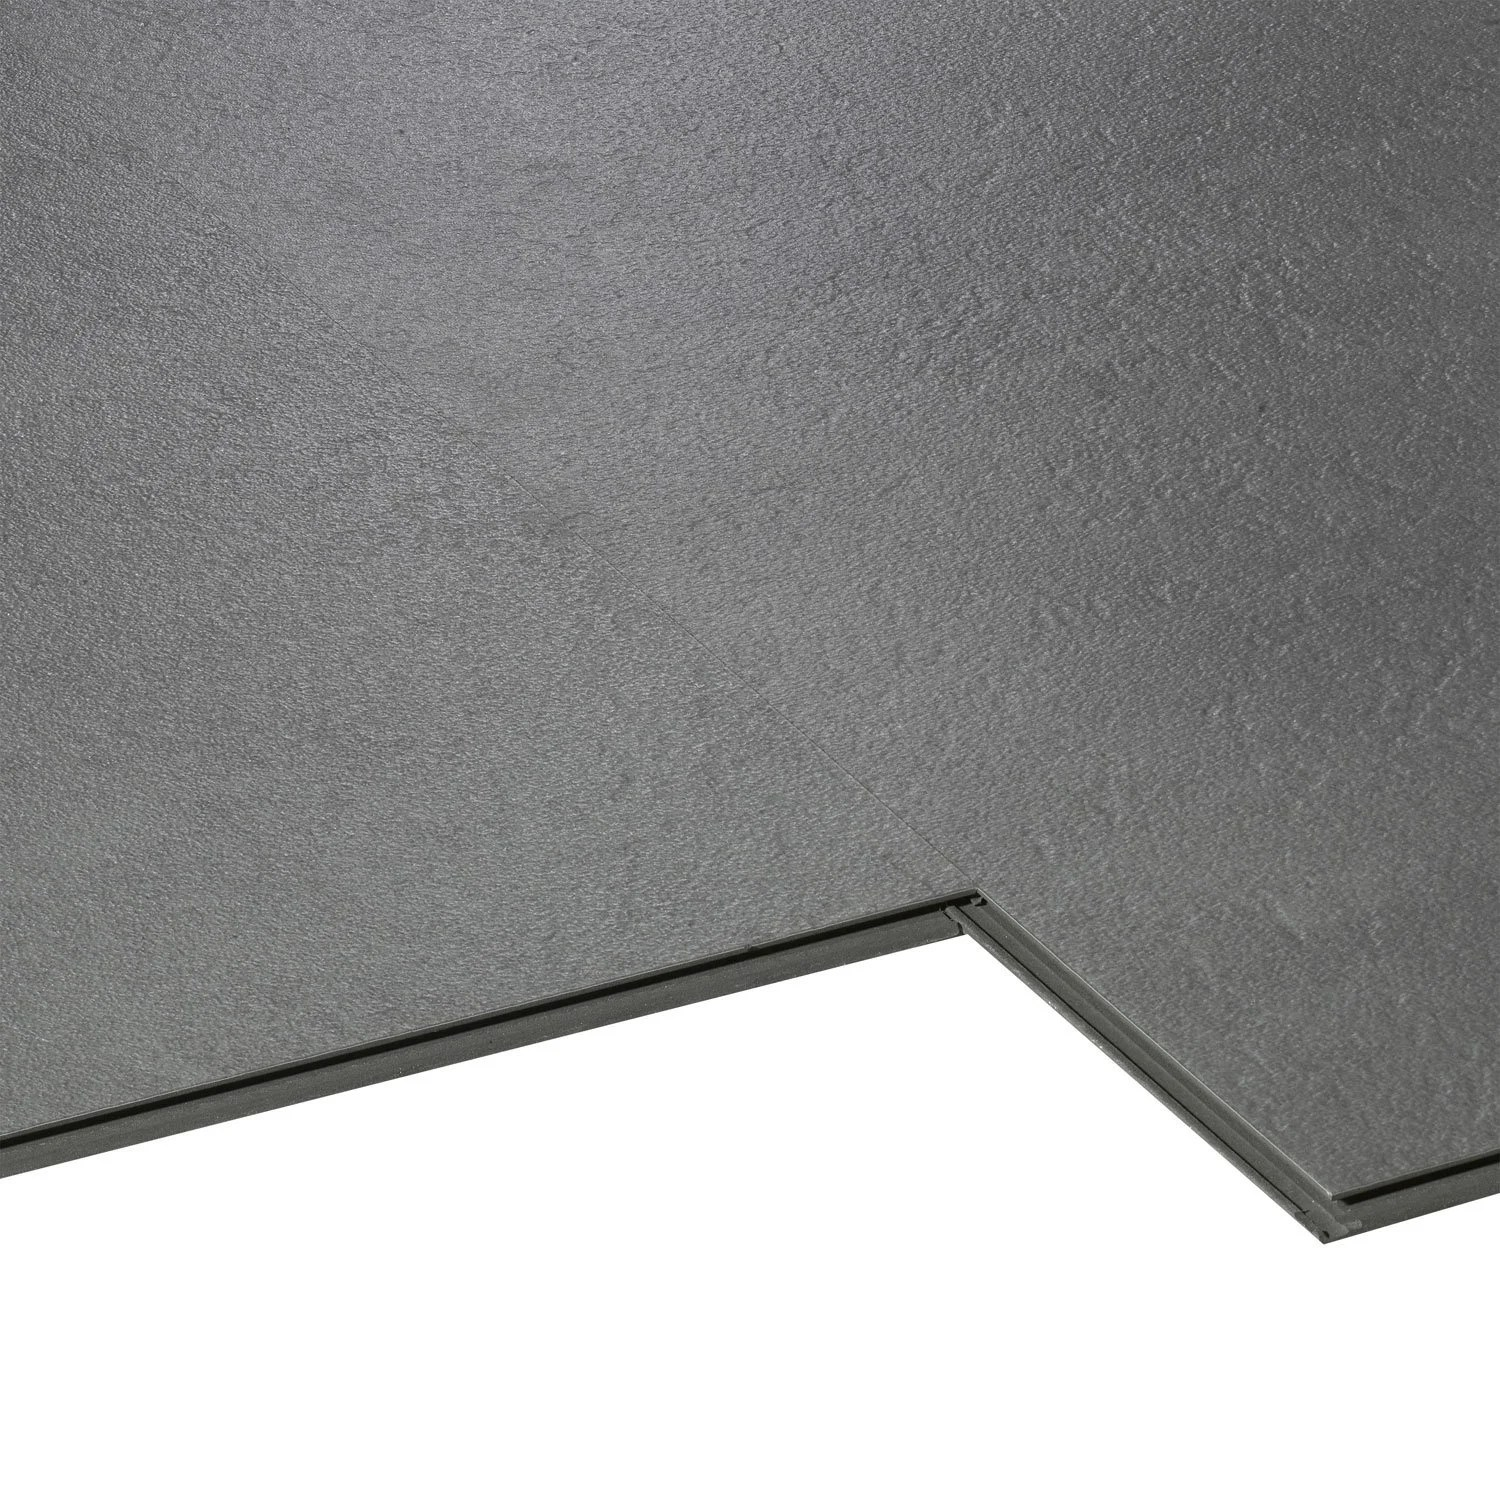 Garantie Pose Carrelage Exterieur Dalle Pvc Clipsable Gris Styling Aero City Leroy Merlin